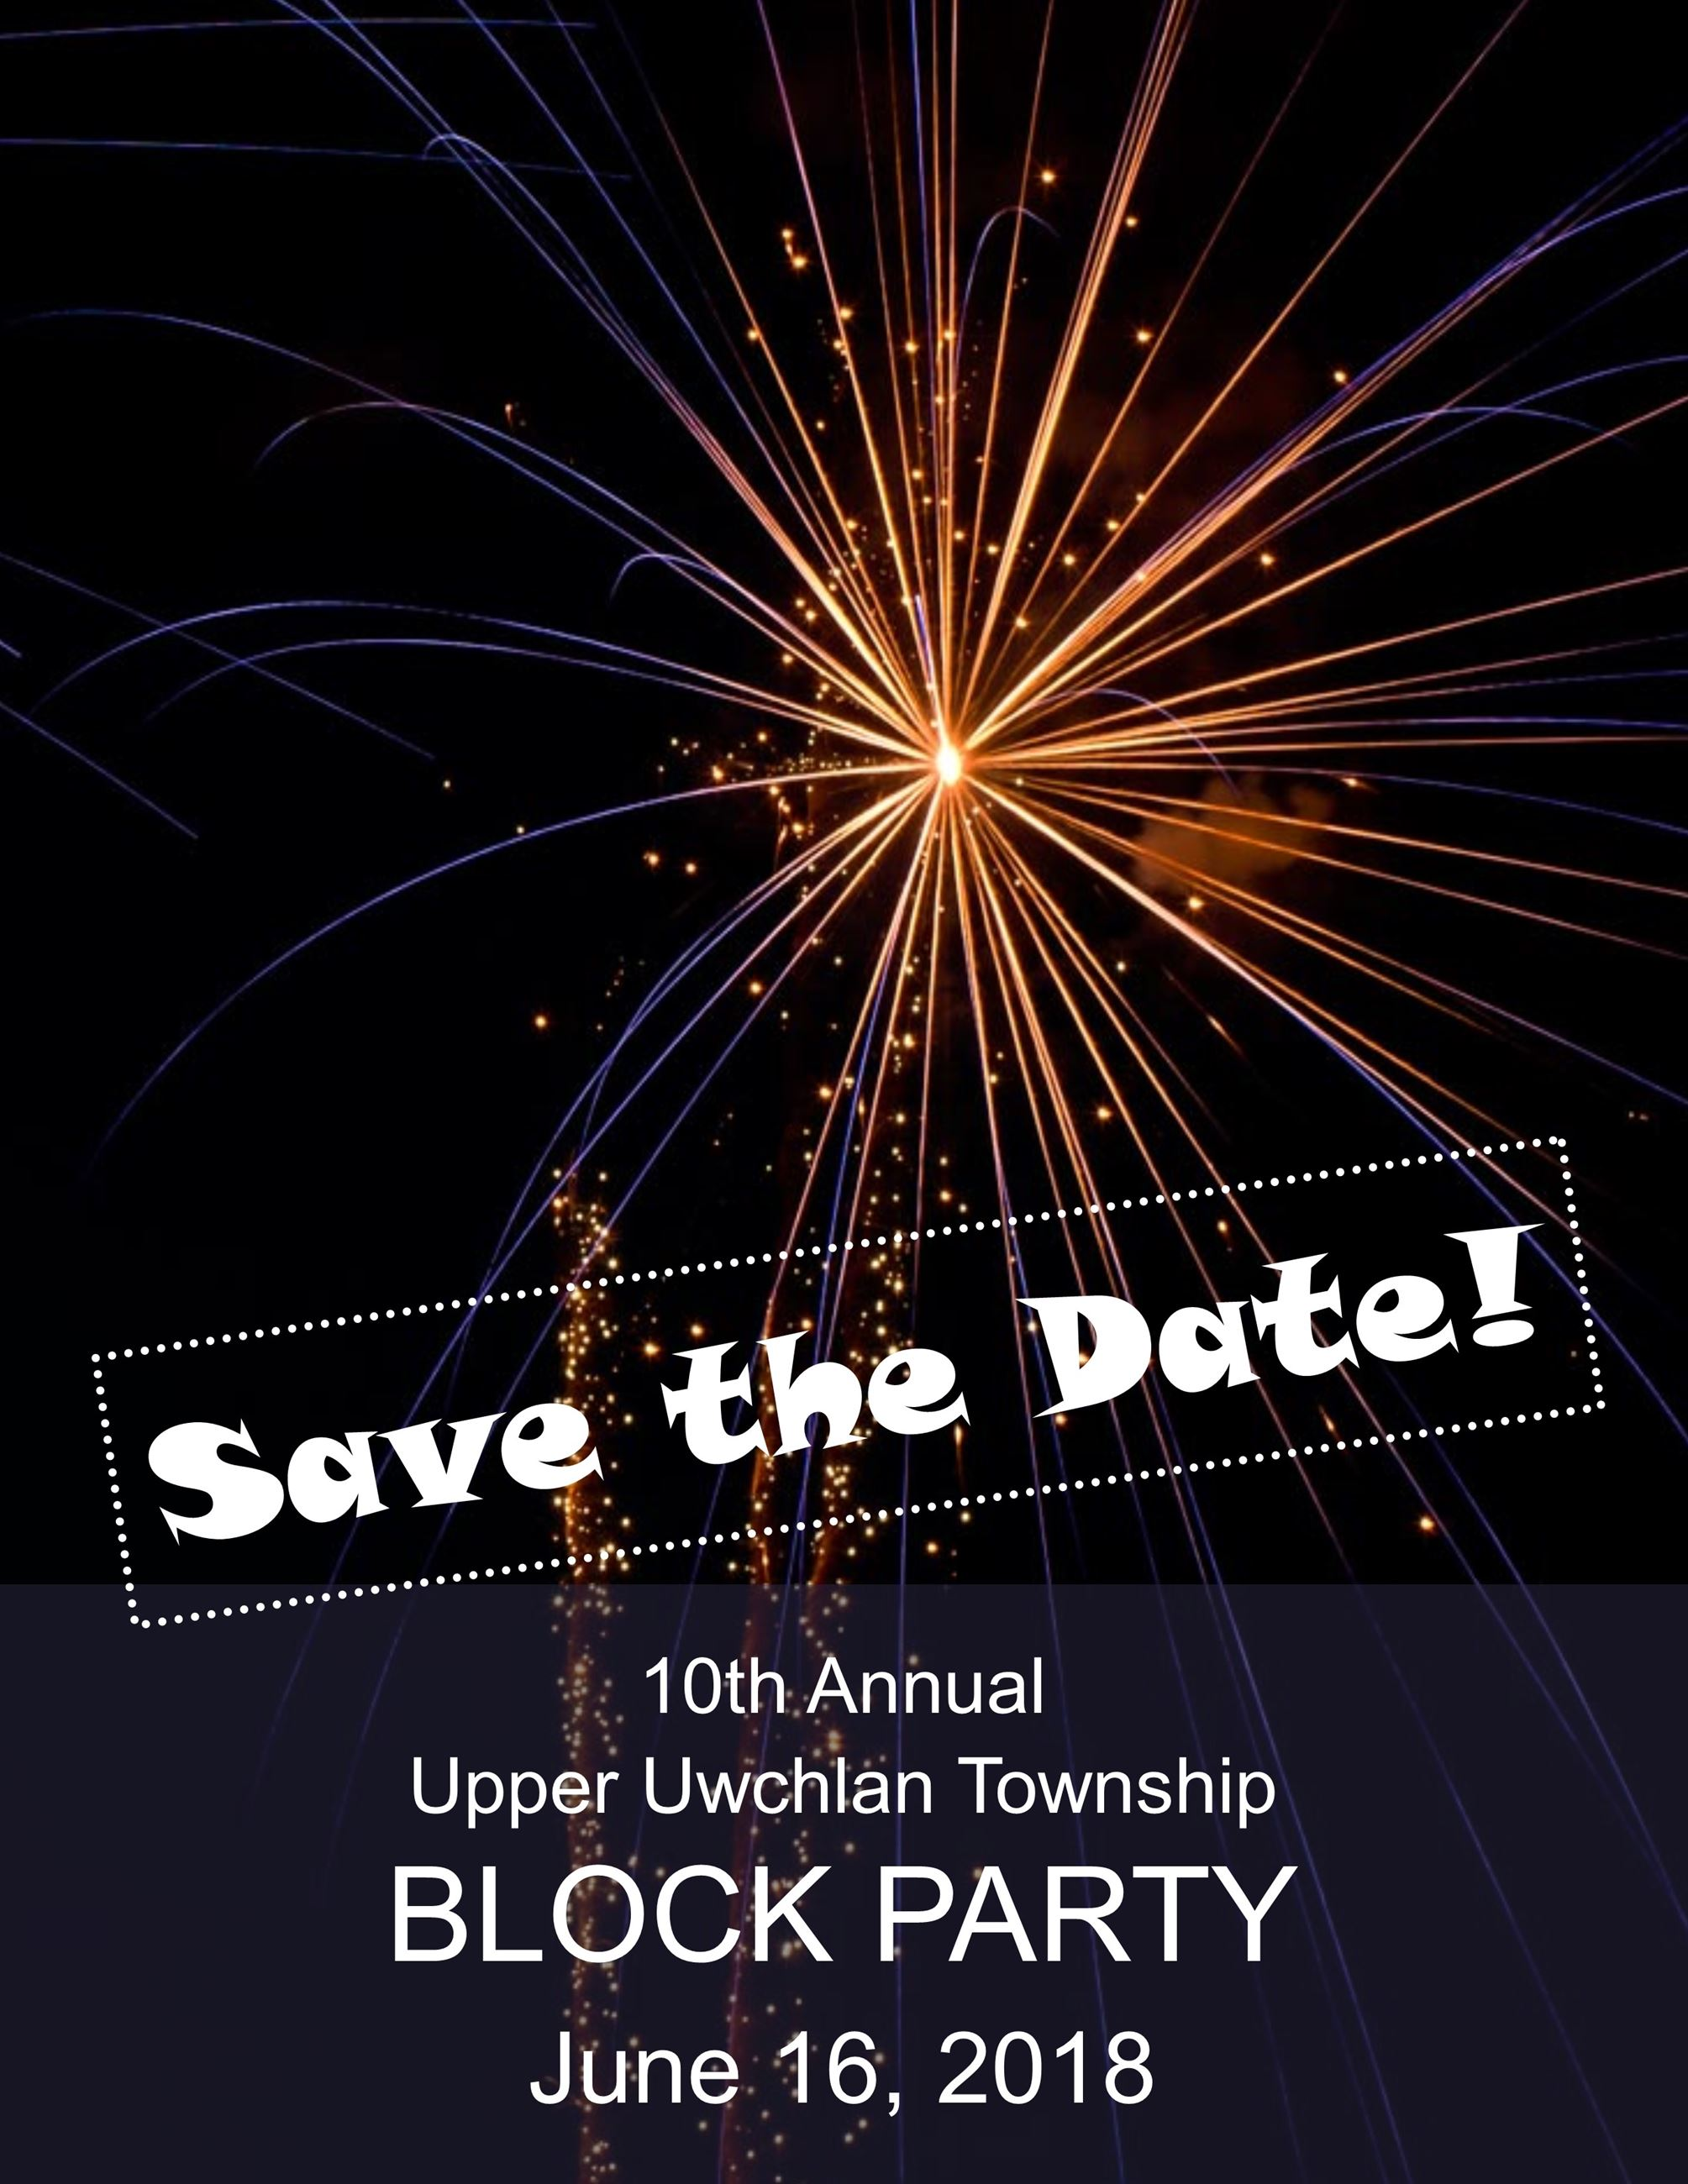 Block Party 2018 Save the Date: June 16, 2018